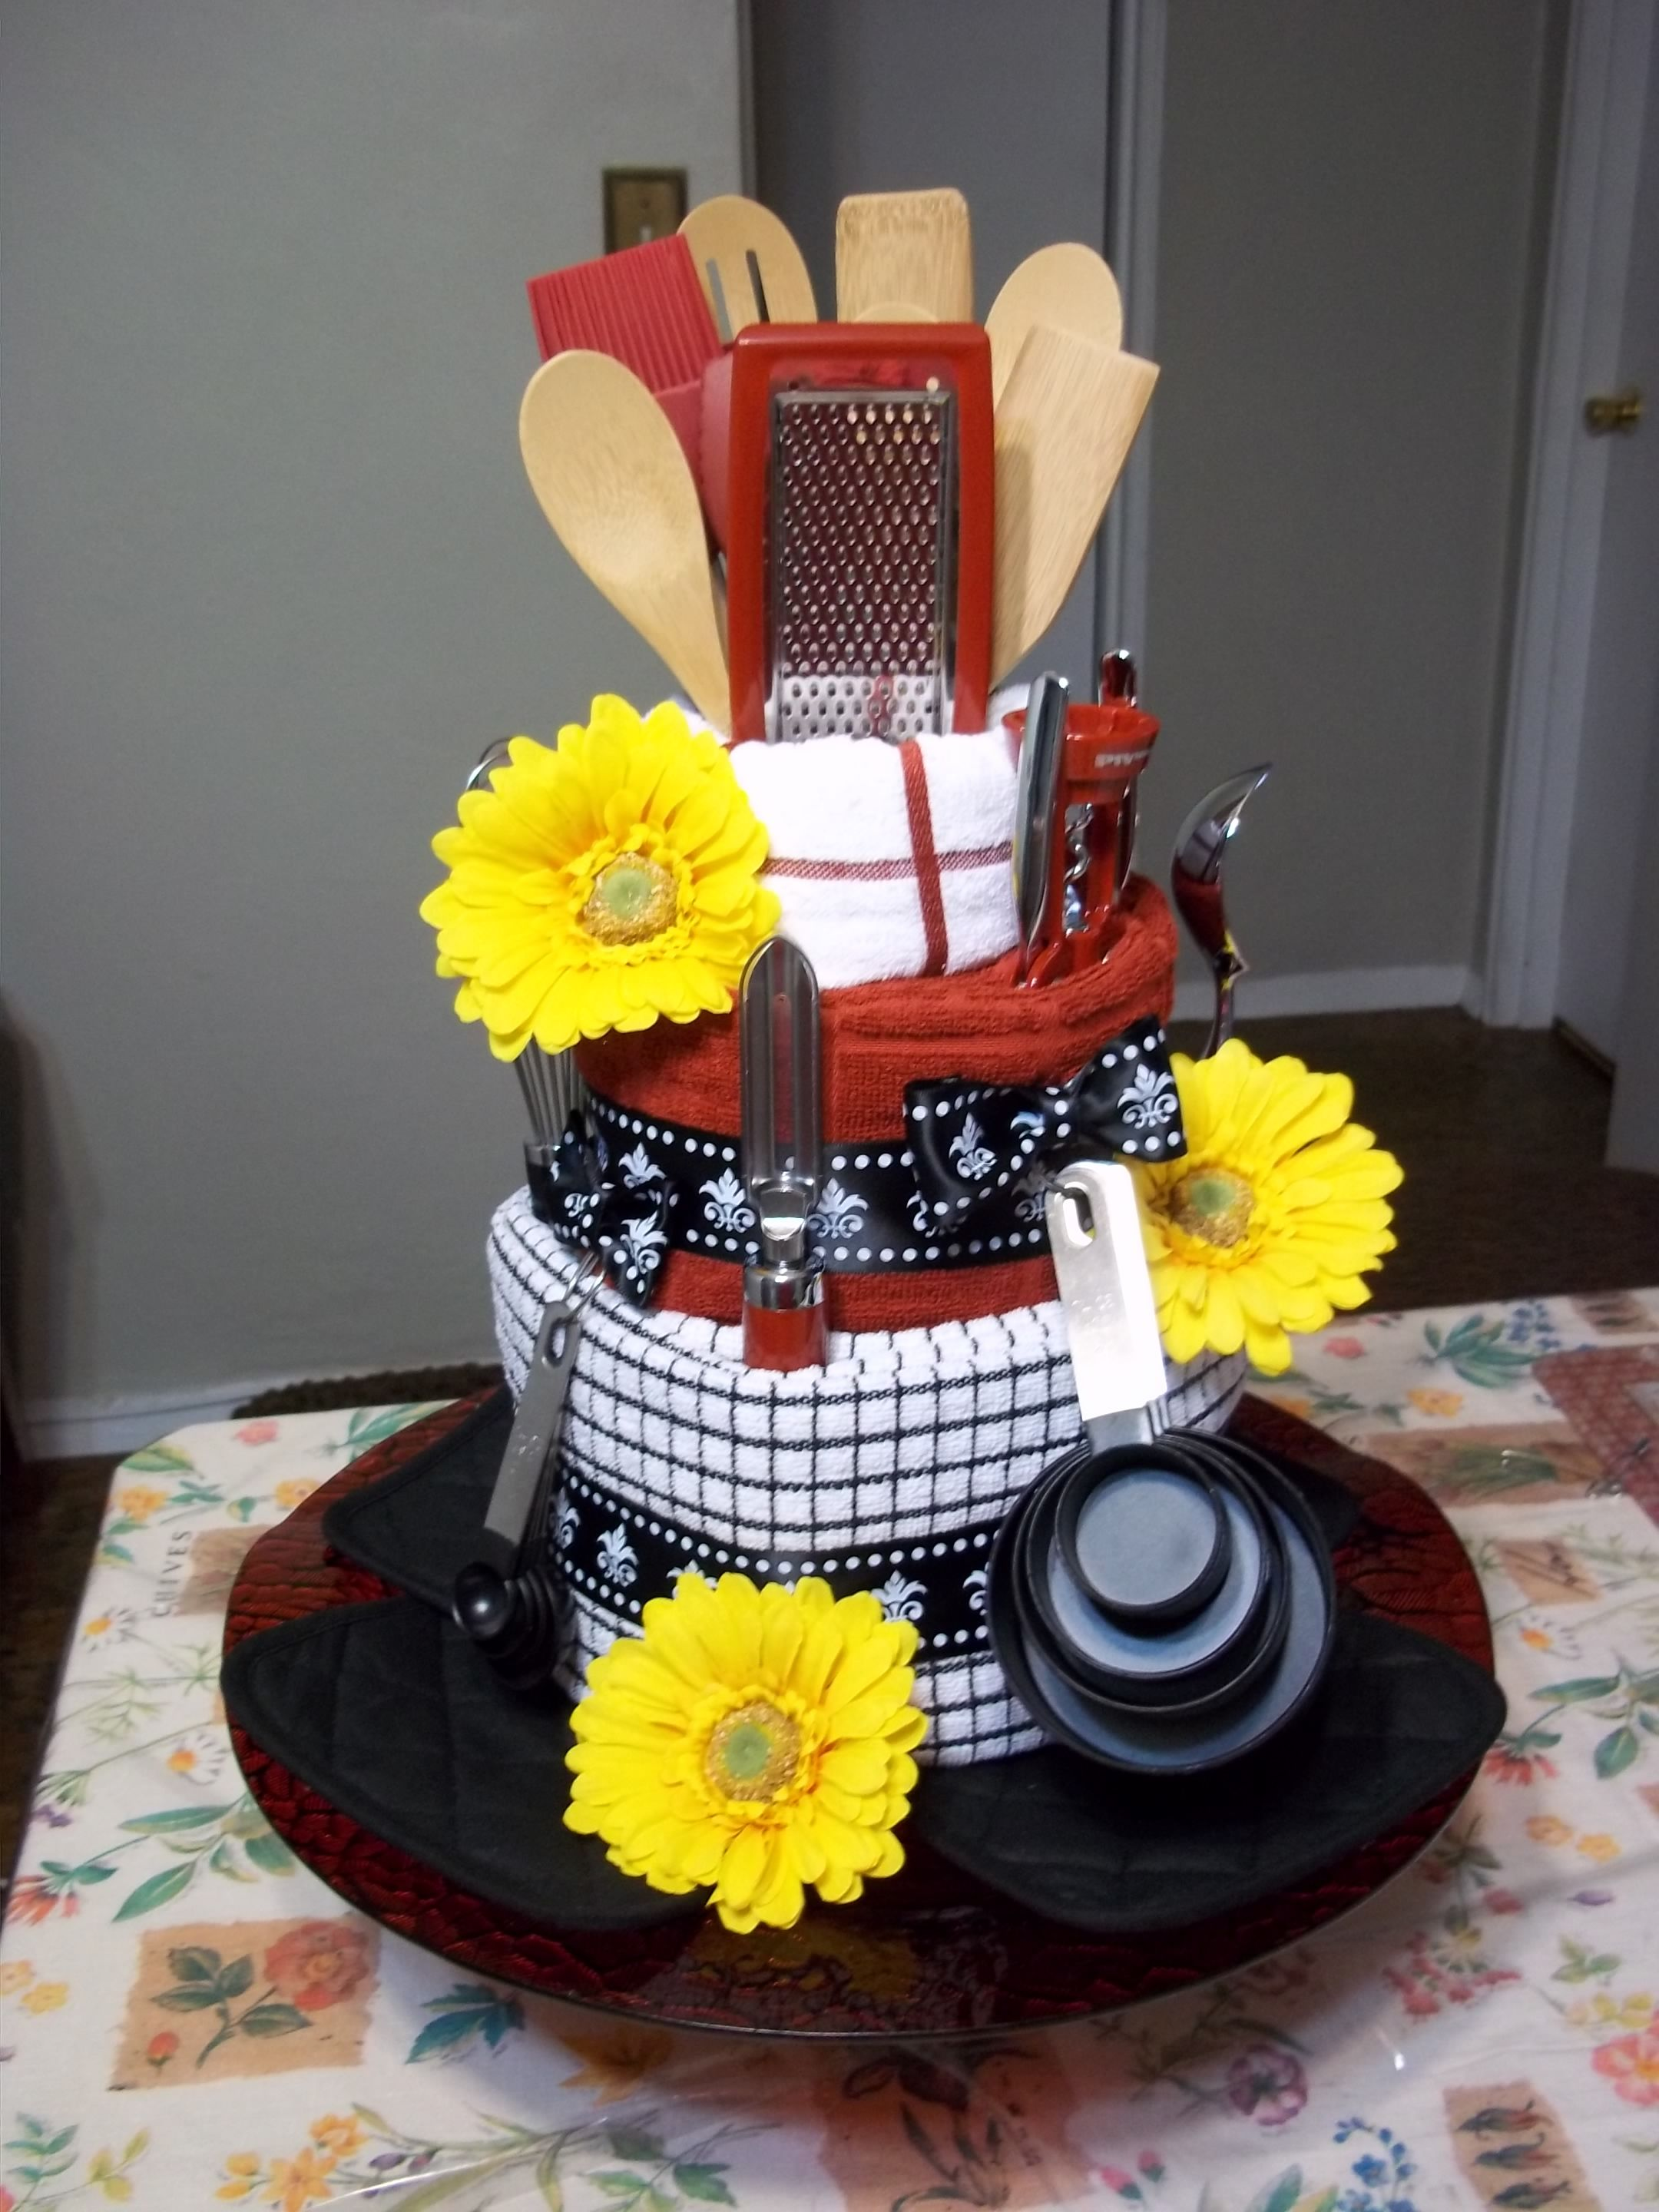 bridal shower craft ideas dish towel cake i made for a bridal shower craft ideas